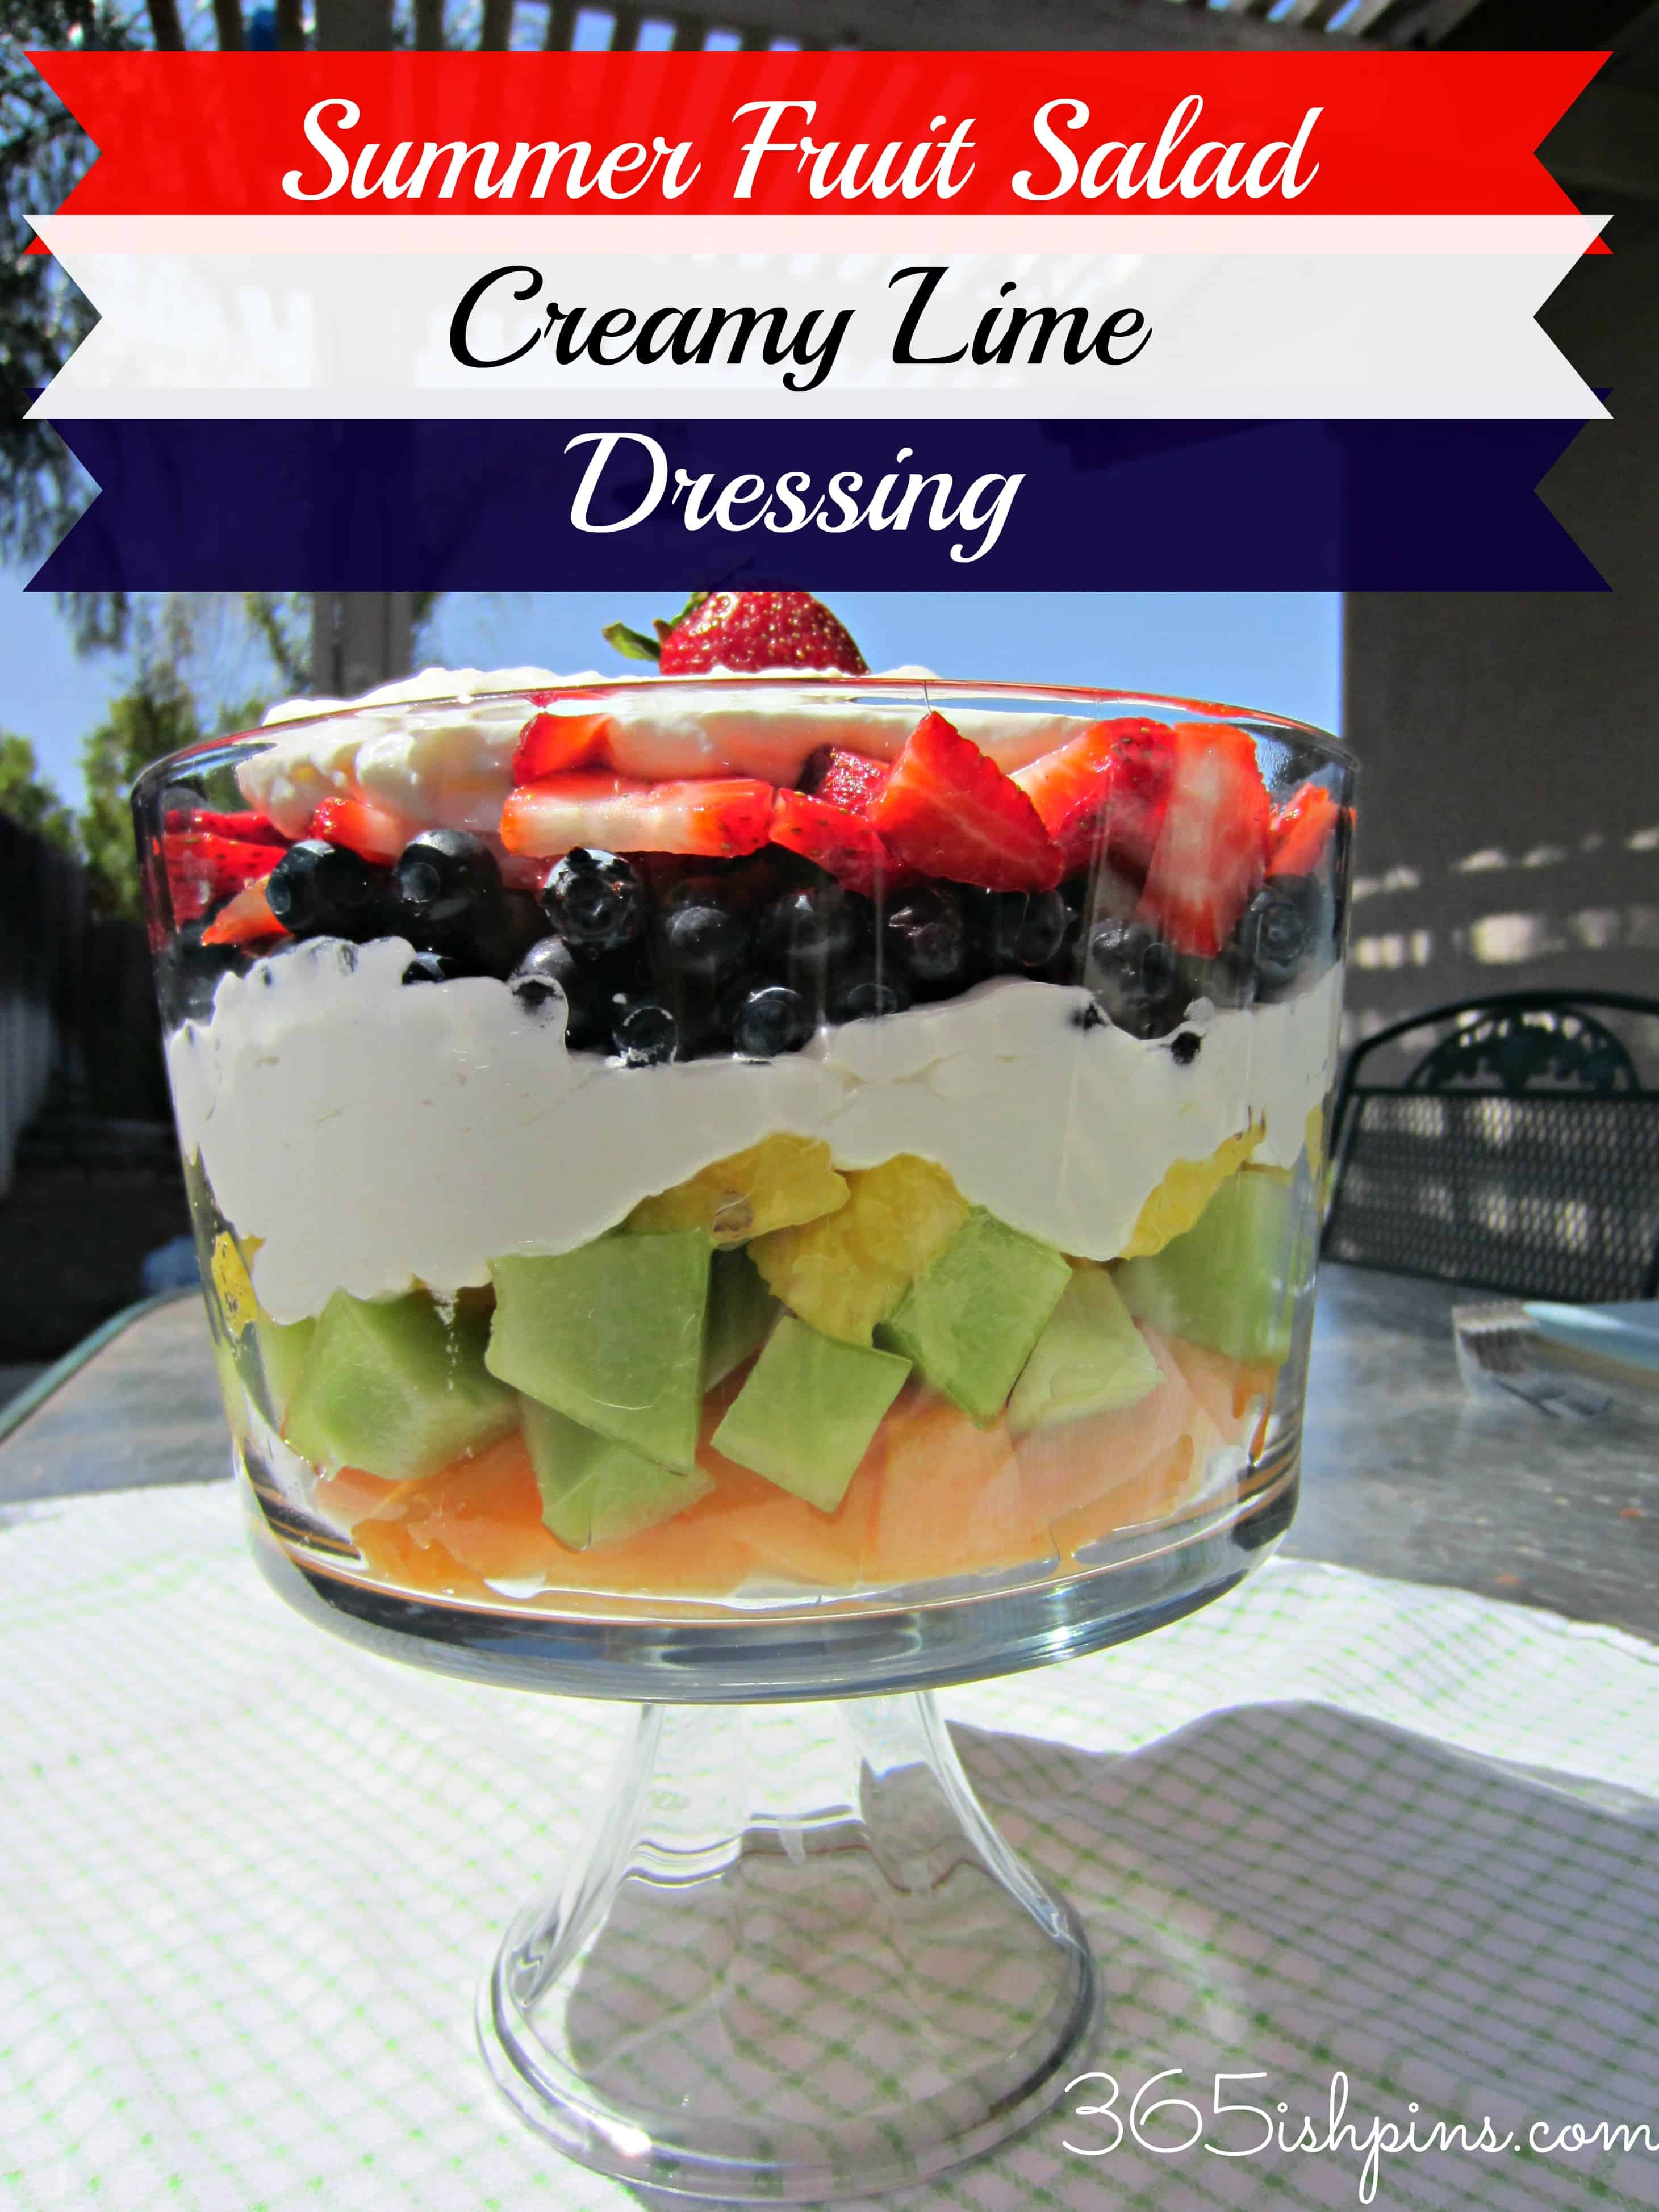 Day 6: Summer Fruits with Creamy Lime Dressing